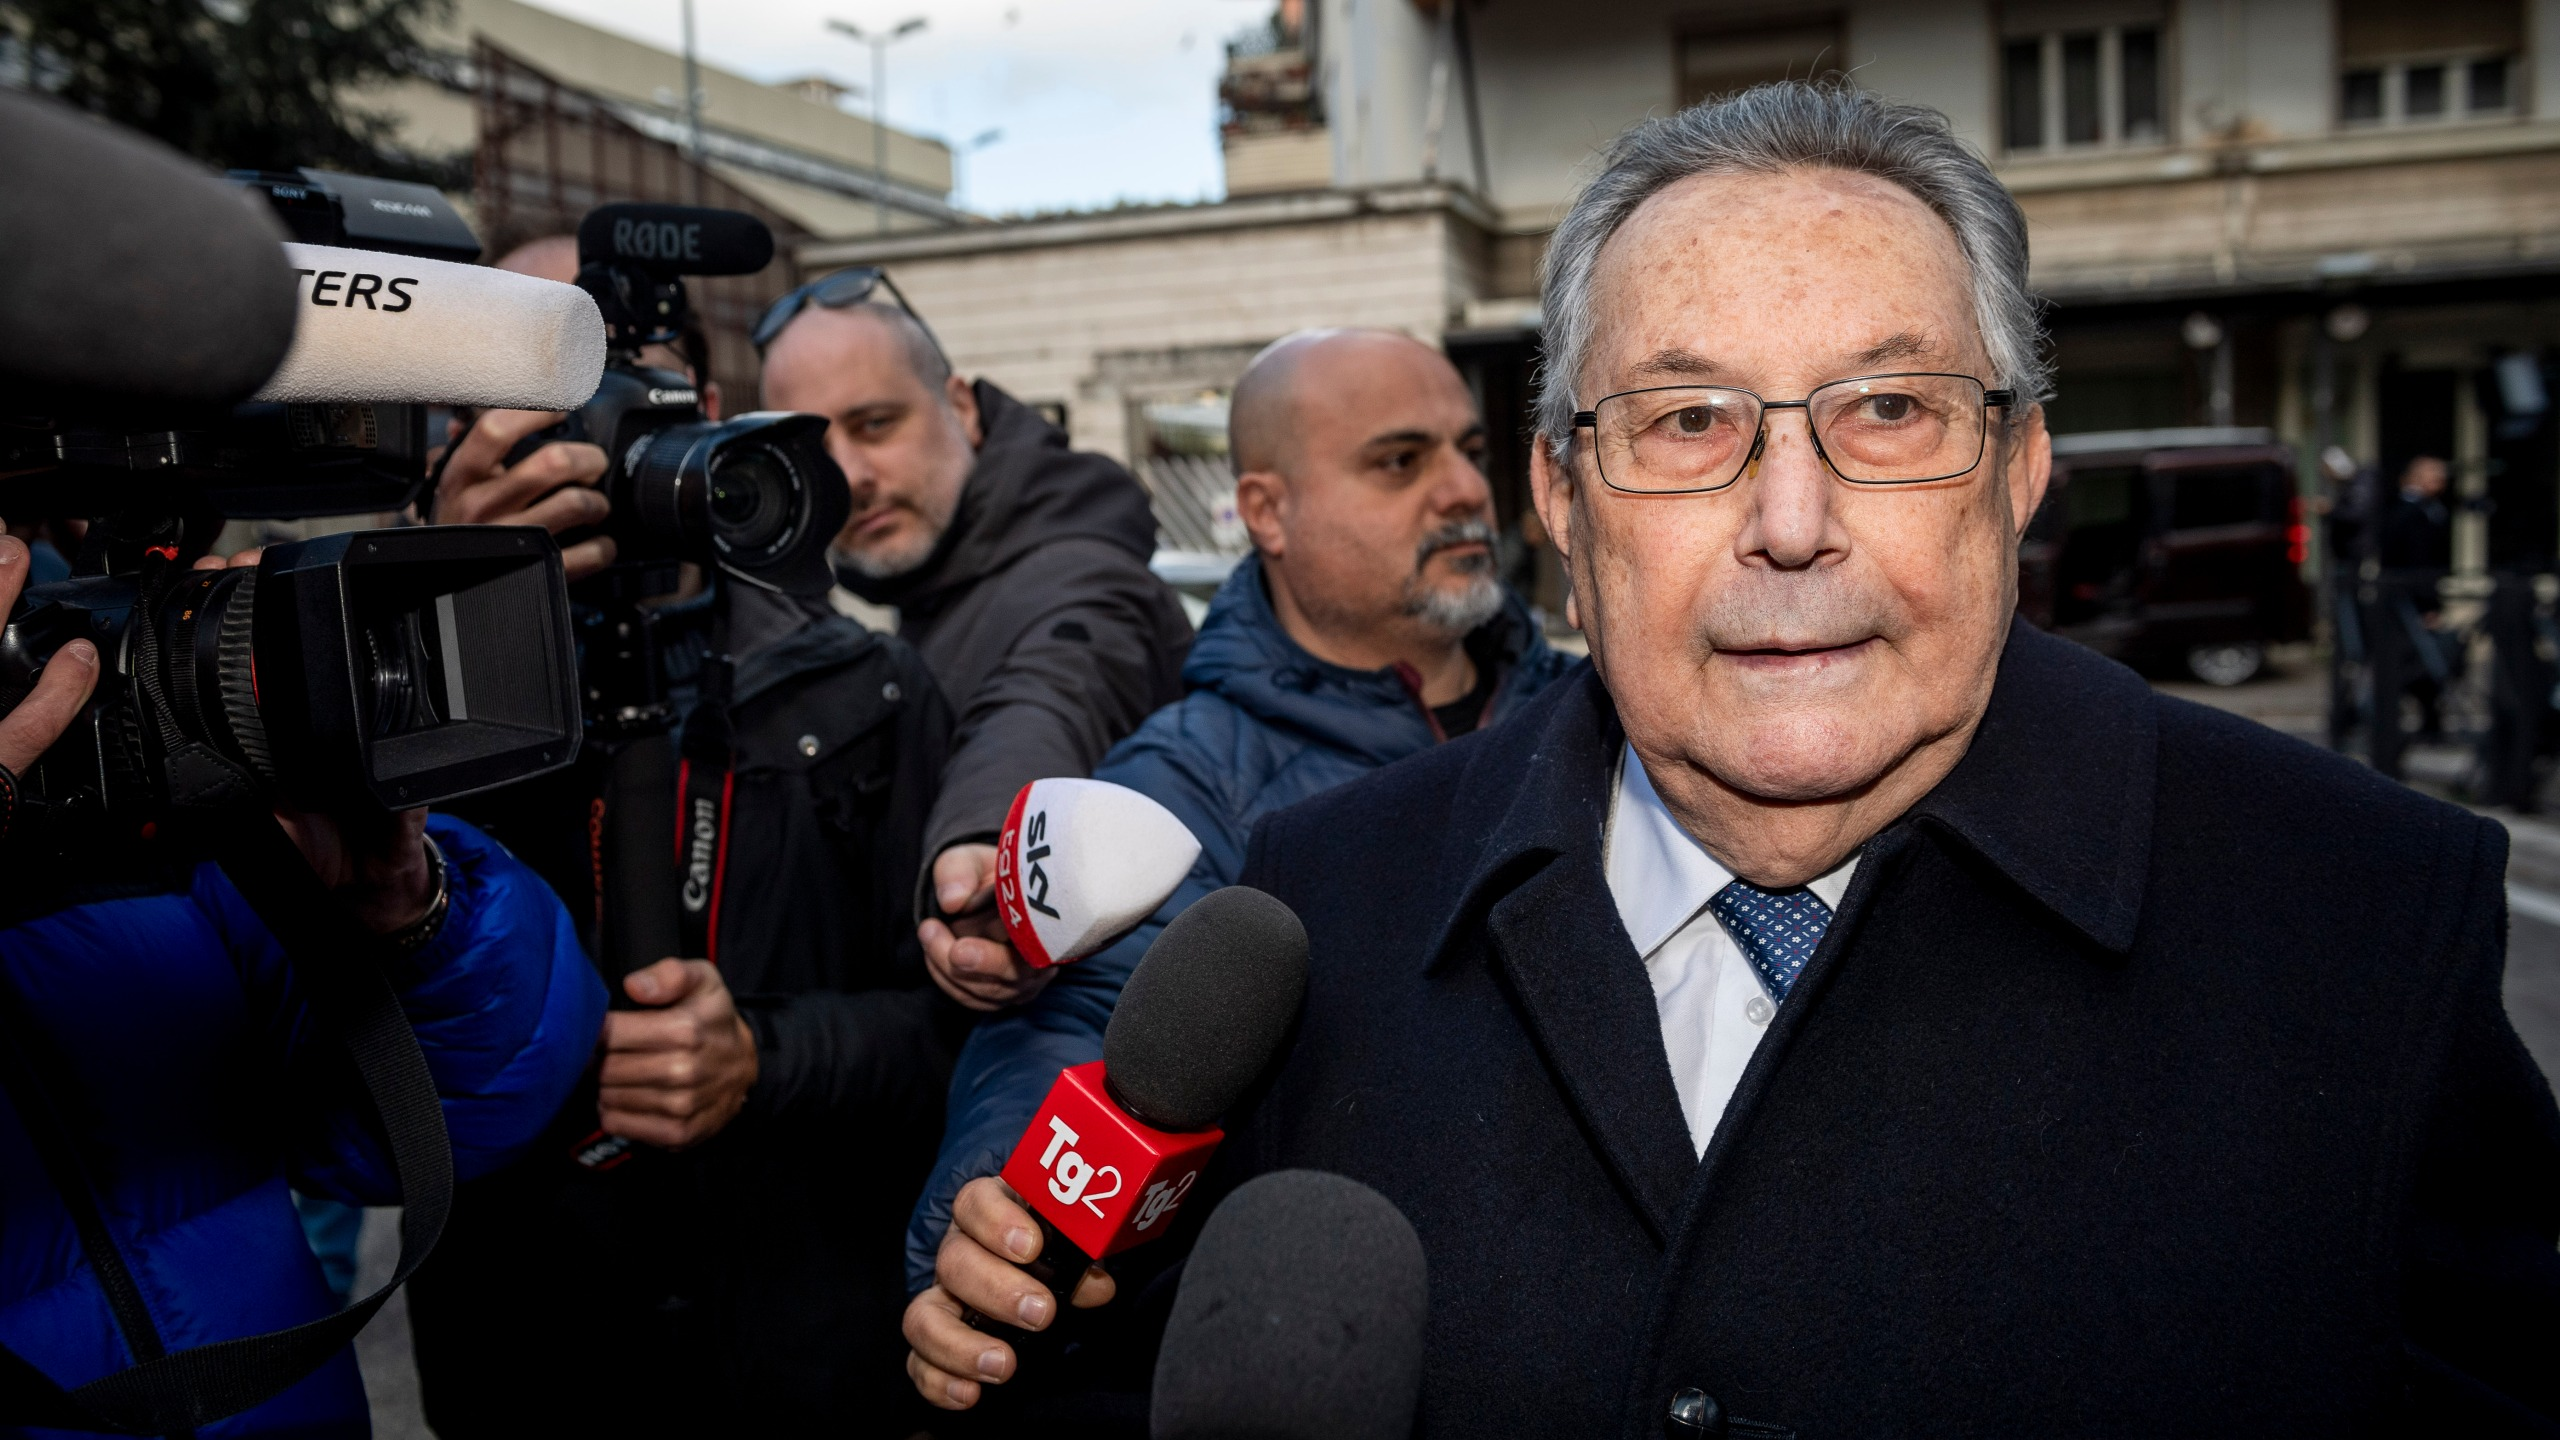 Franco Coppi, lawyer of Mario Cerciello's family, talks to media in Rome on Feb. 26, 2020, as the trial begins for two California men accused in the officer's death. (Credit: Antonio Masiello / Getty Images)